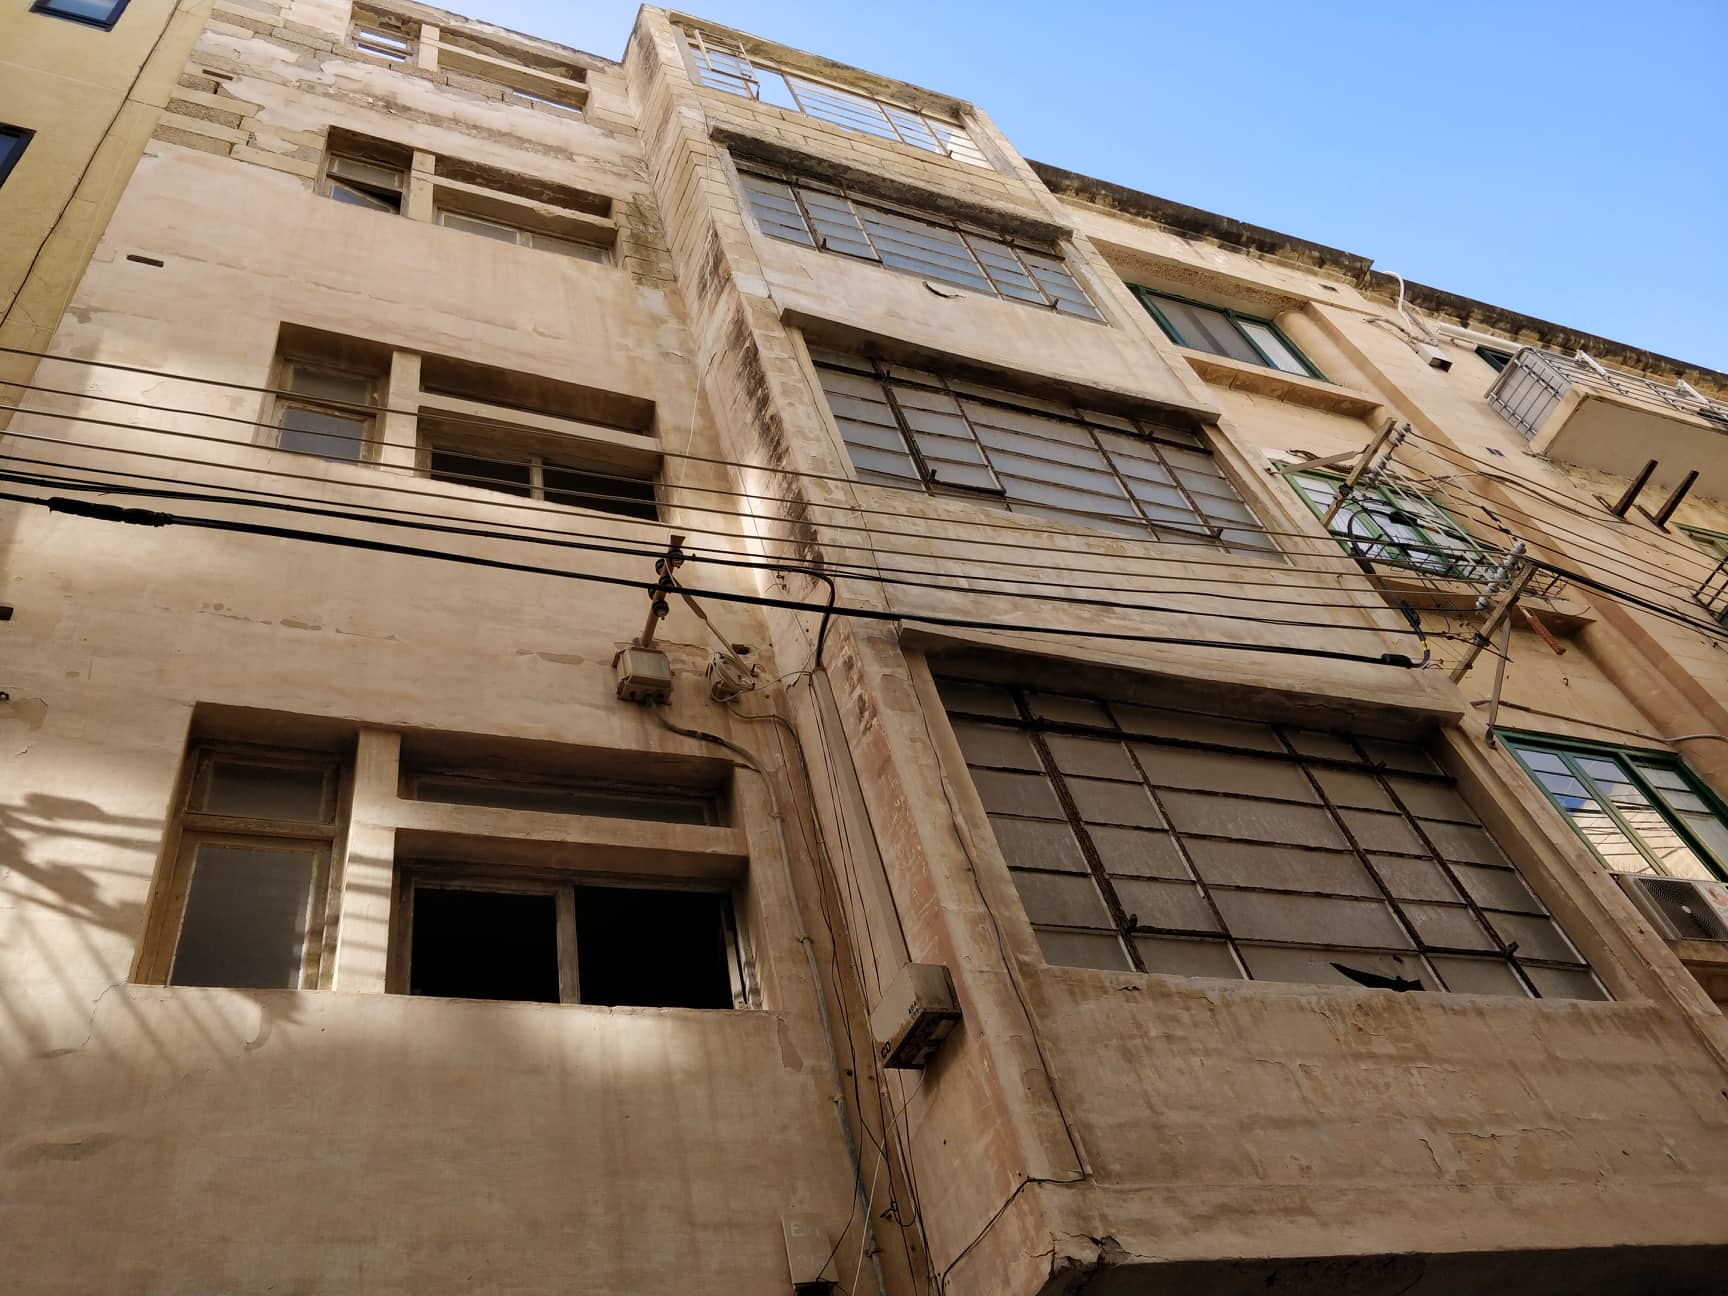 11-storey hotel proposed in Sliema residential area - Newsbook